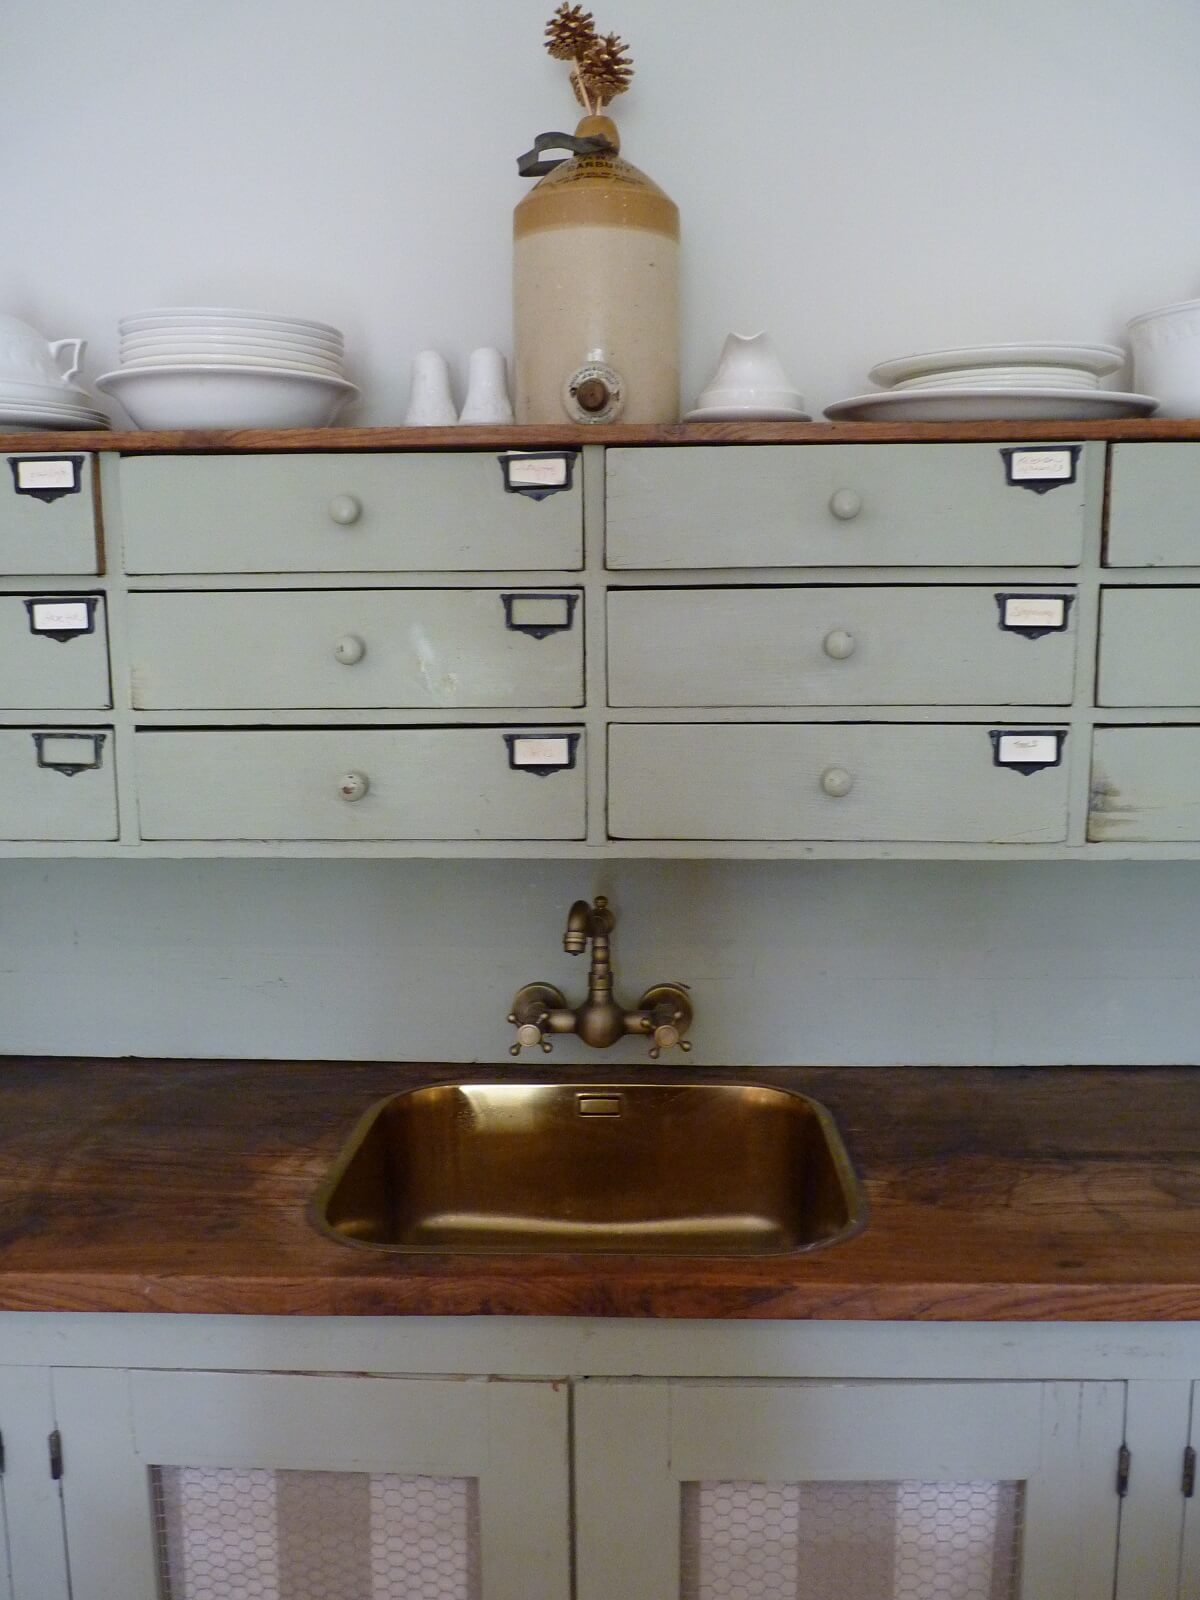 Gold sink to wash your paintbrushes in!